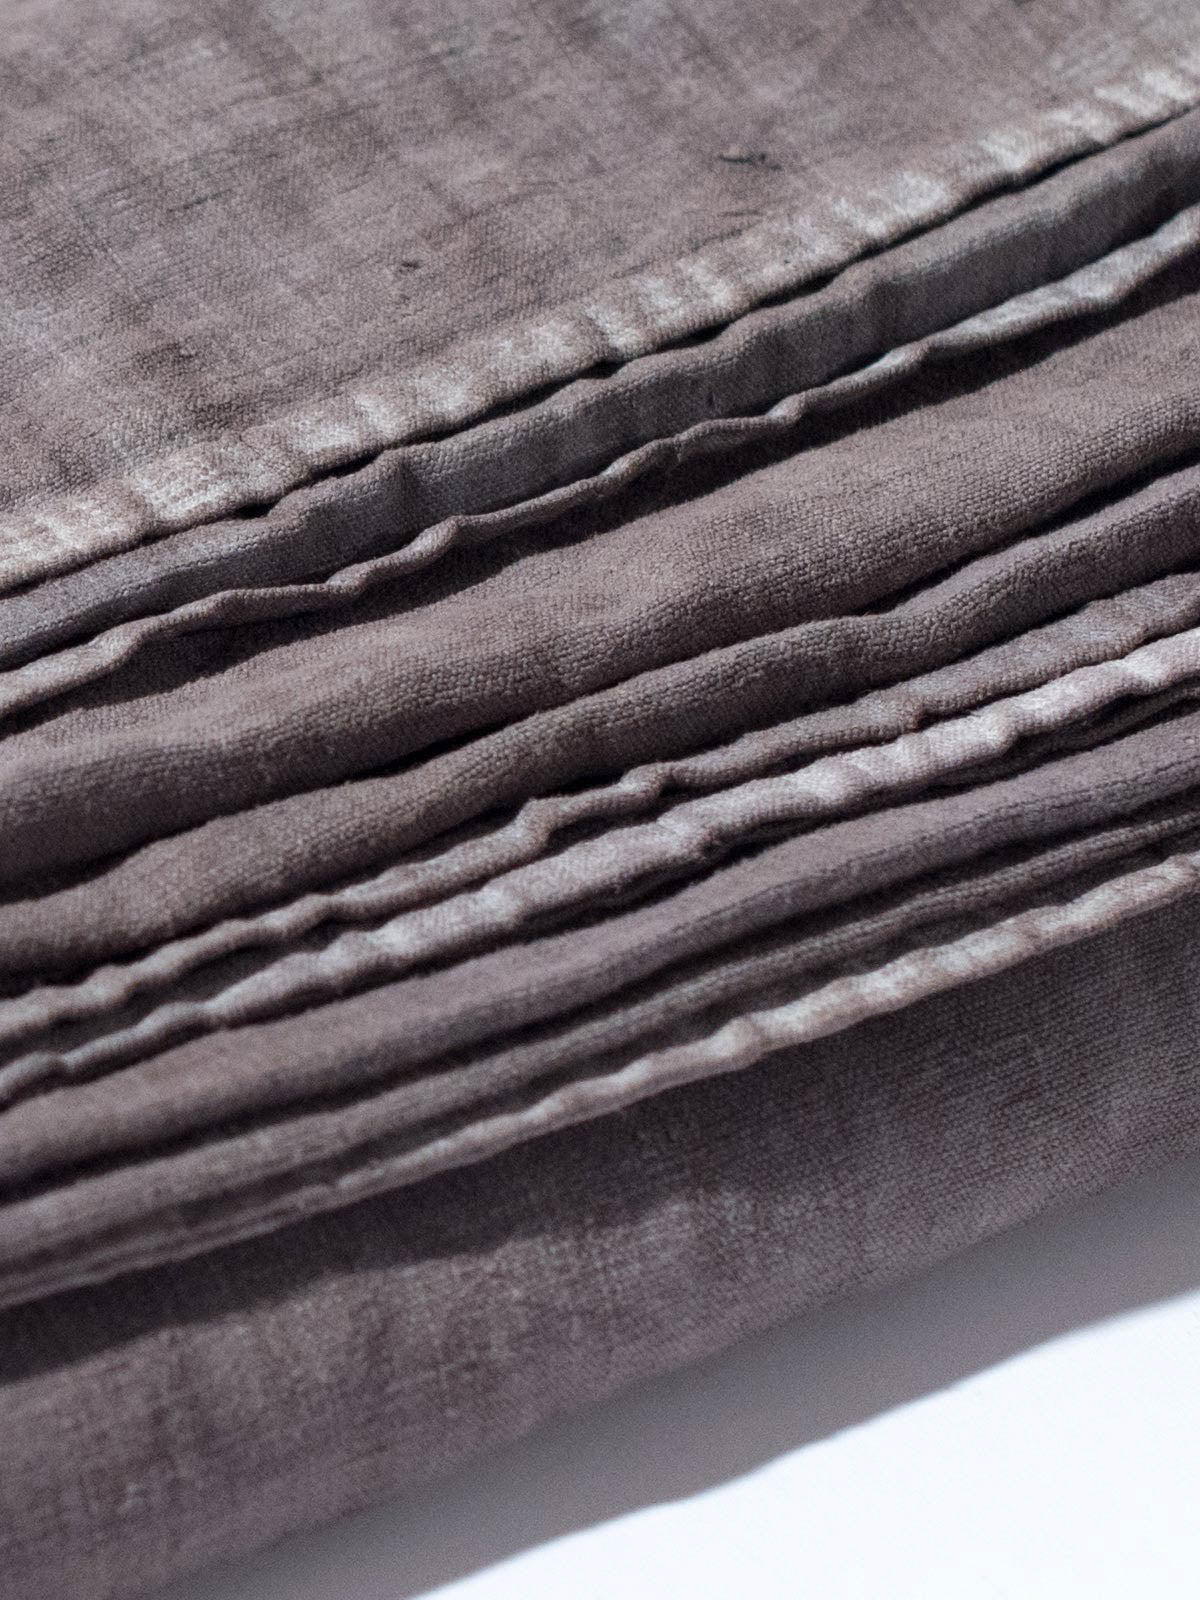 NATURAL LINEN THROW - Celestial - CELESTIAL - Sourced from artists in Europe, Asia and Africa, these limited edition pieces inspire a life of simplicity and style.